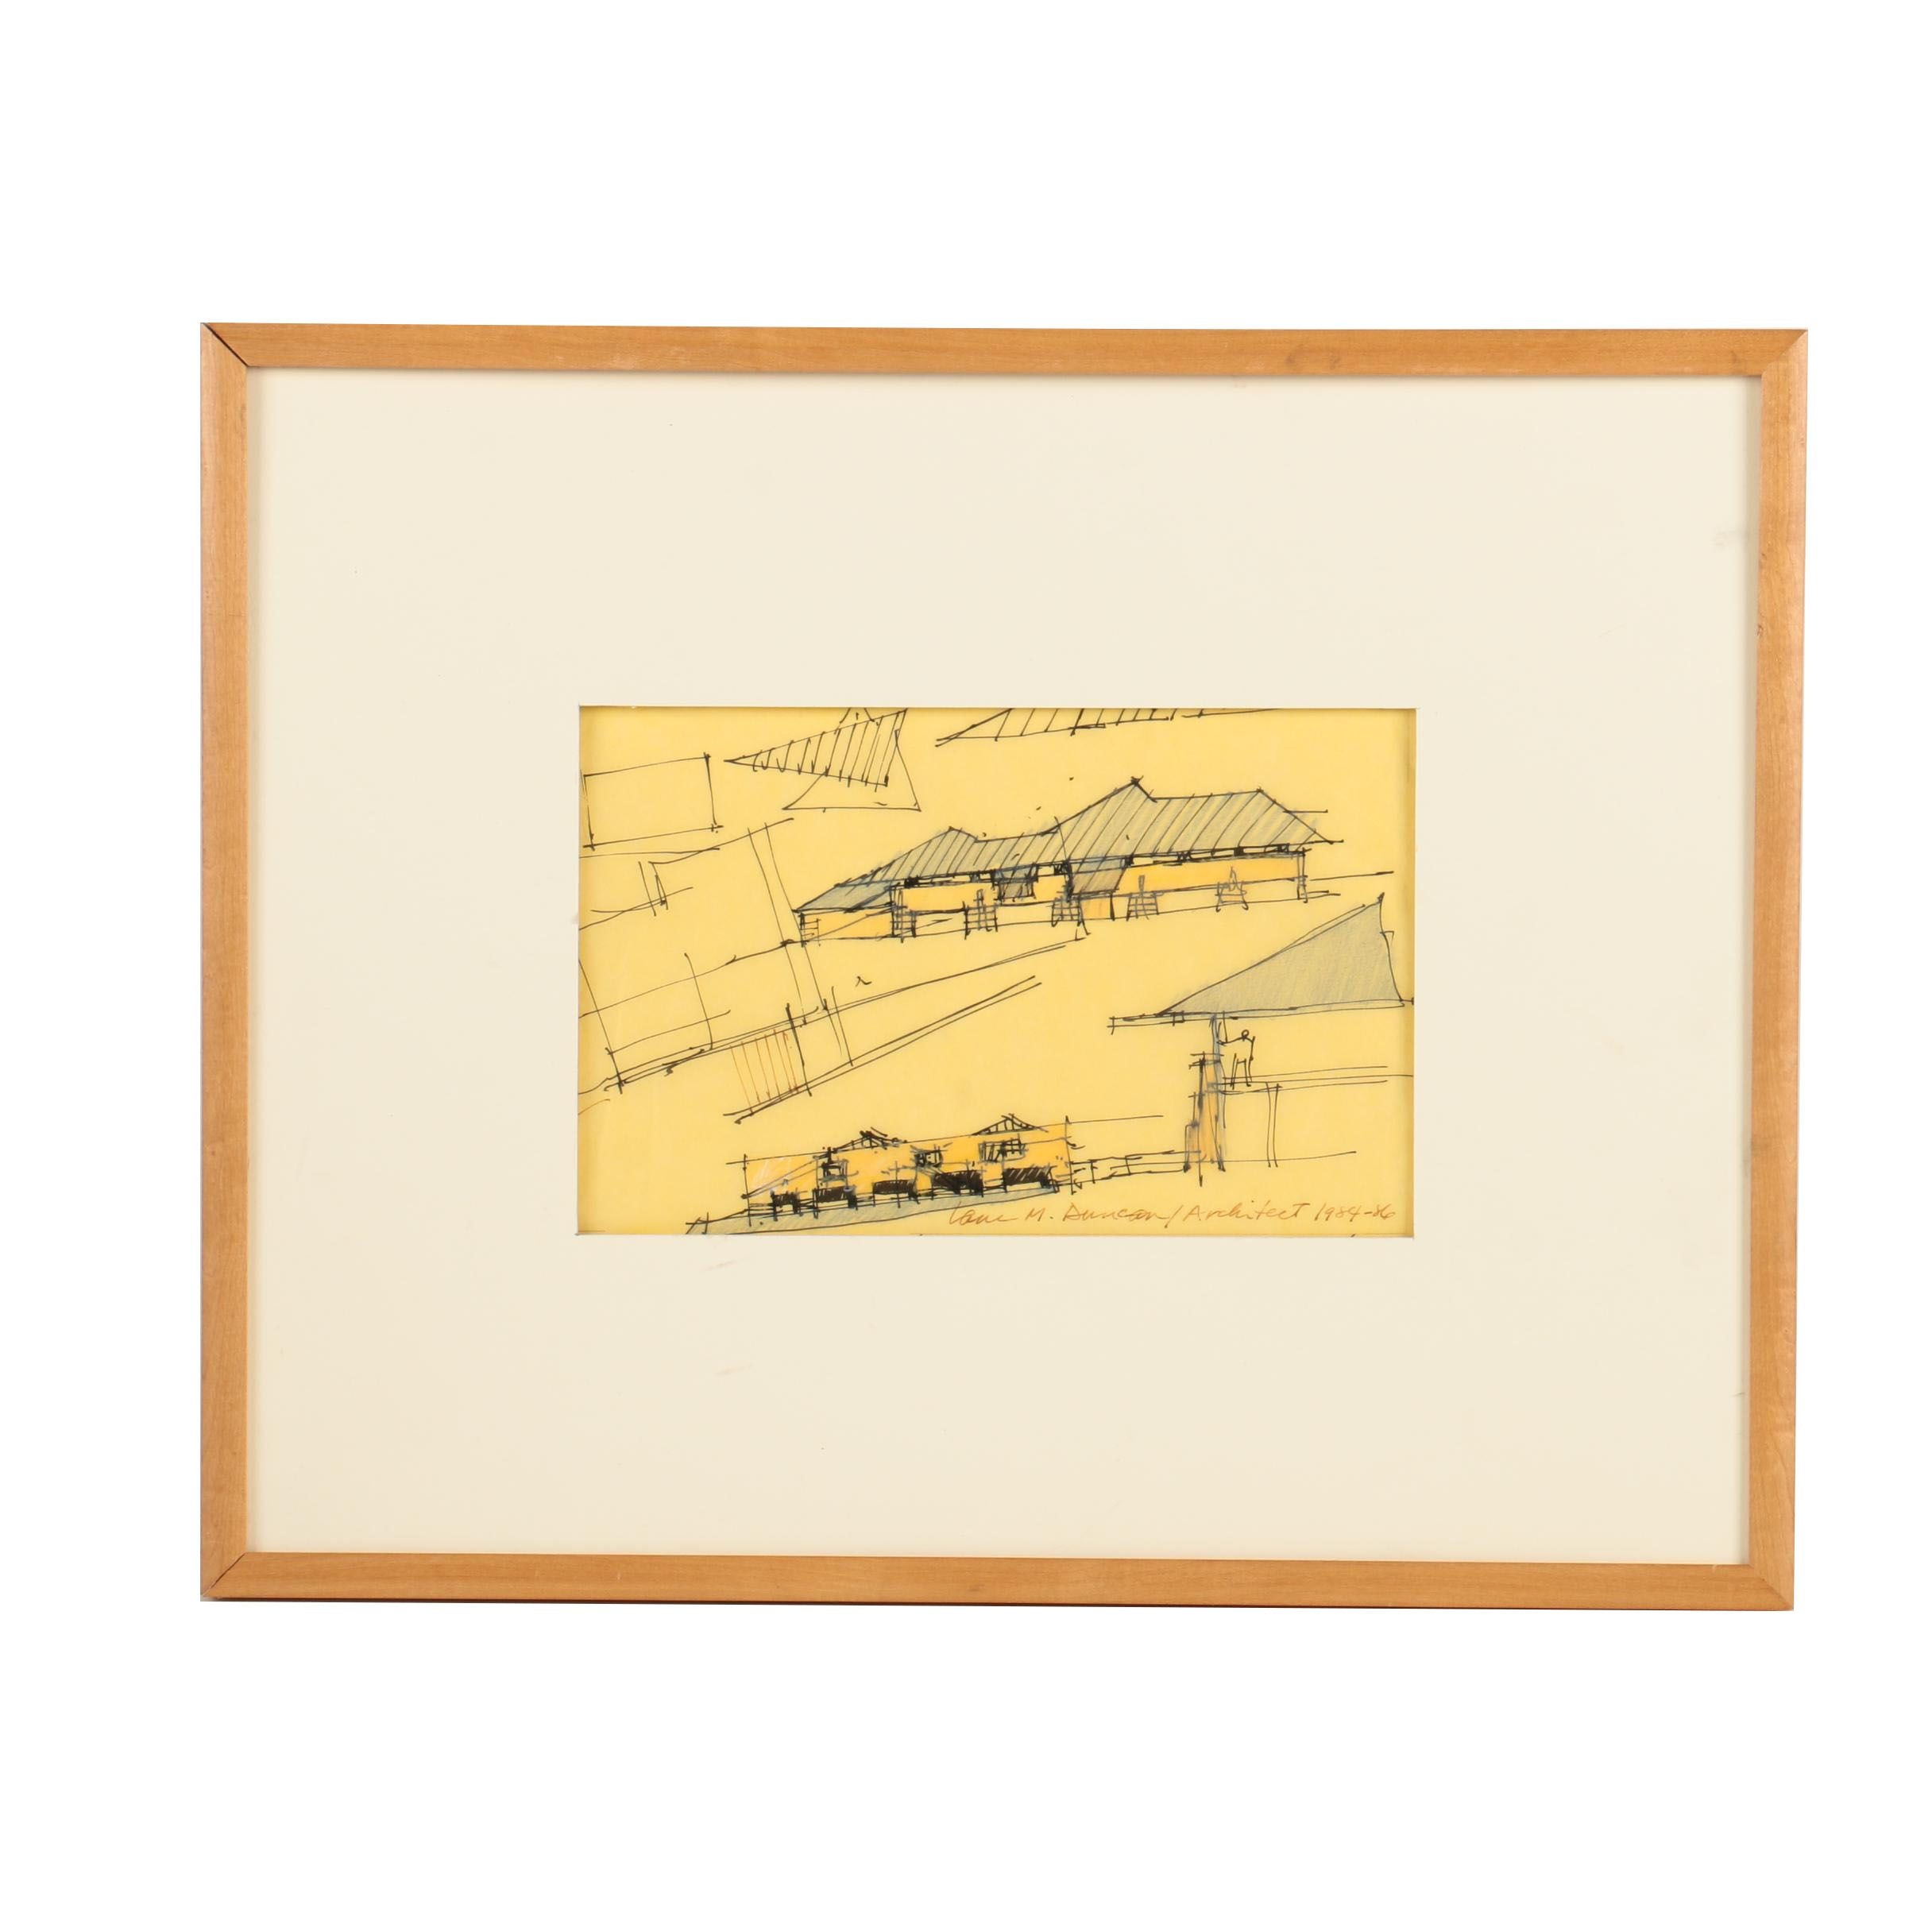 Lane M. Duncan Vintage Mixed Media Architectural Drawing on Paper